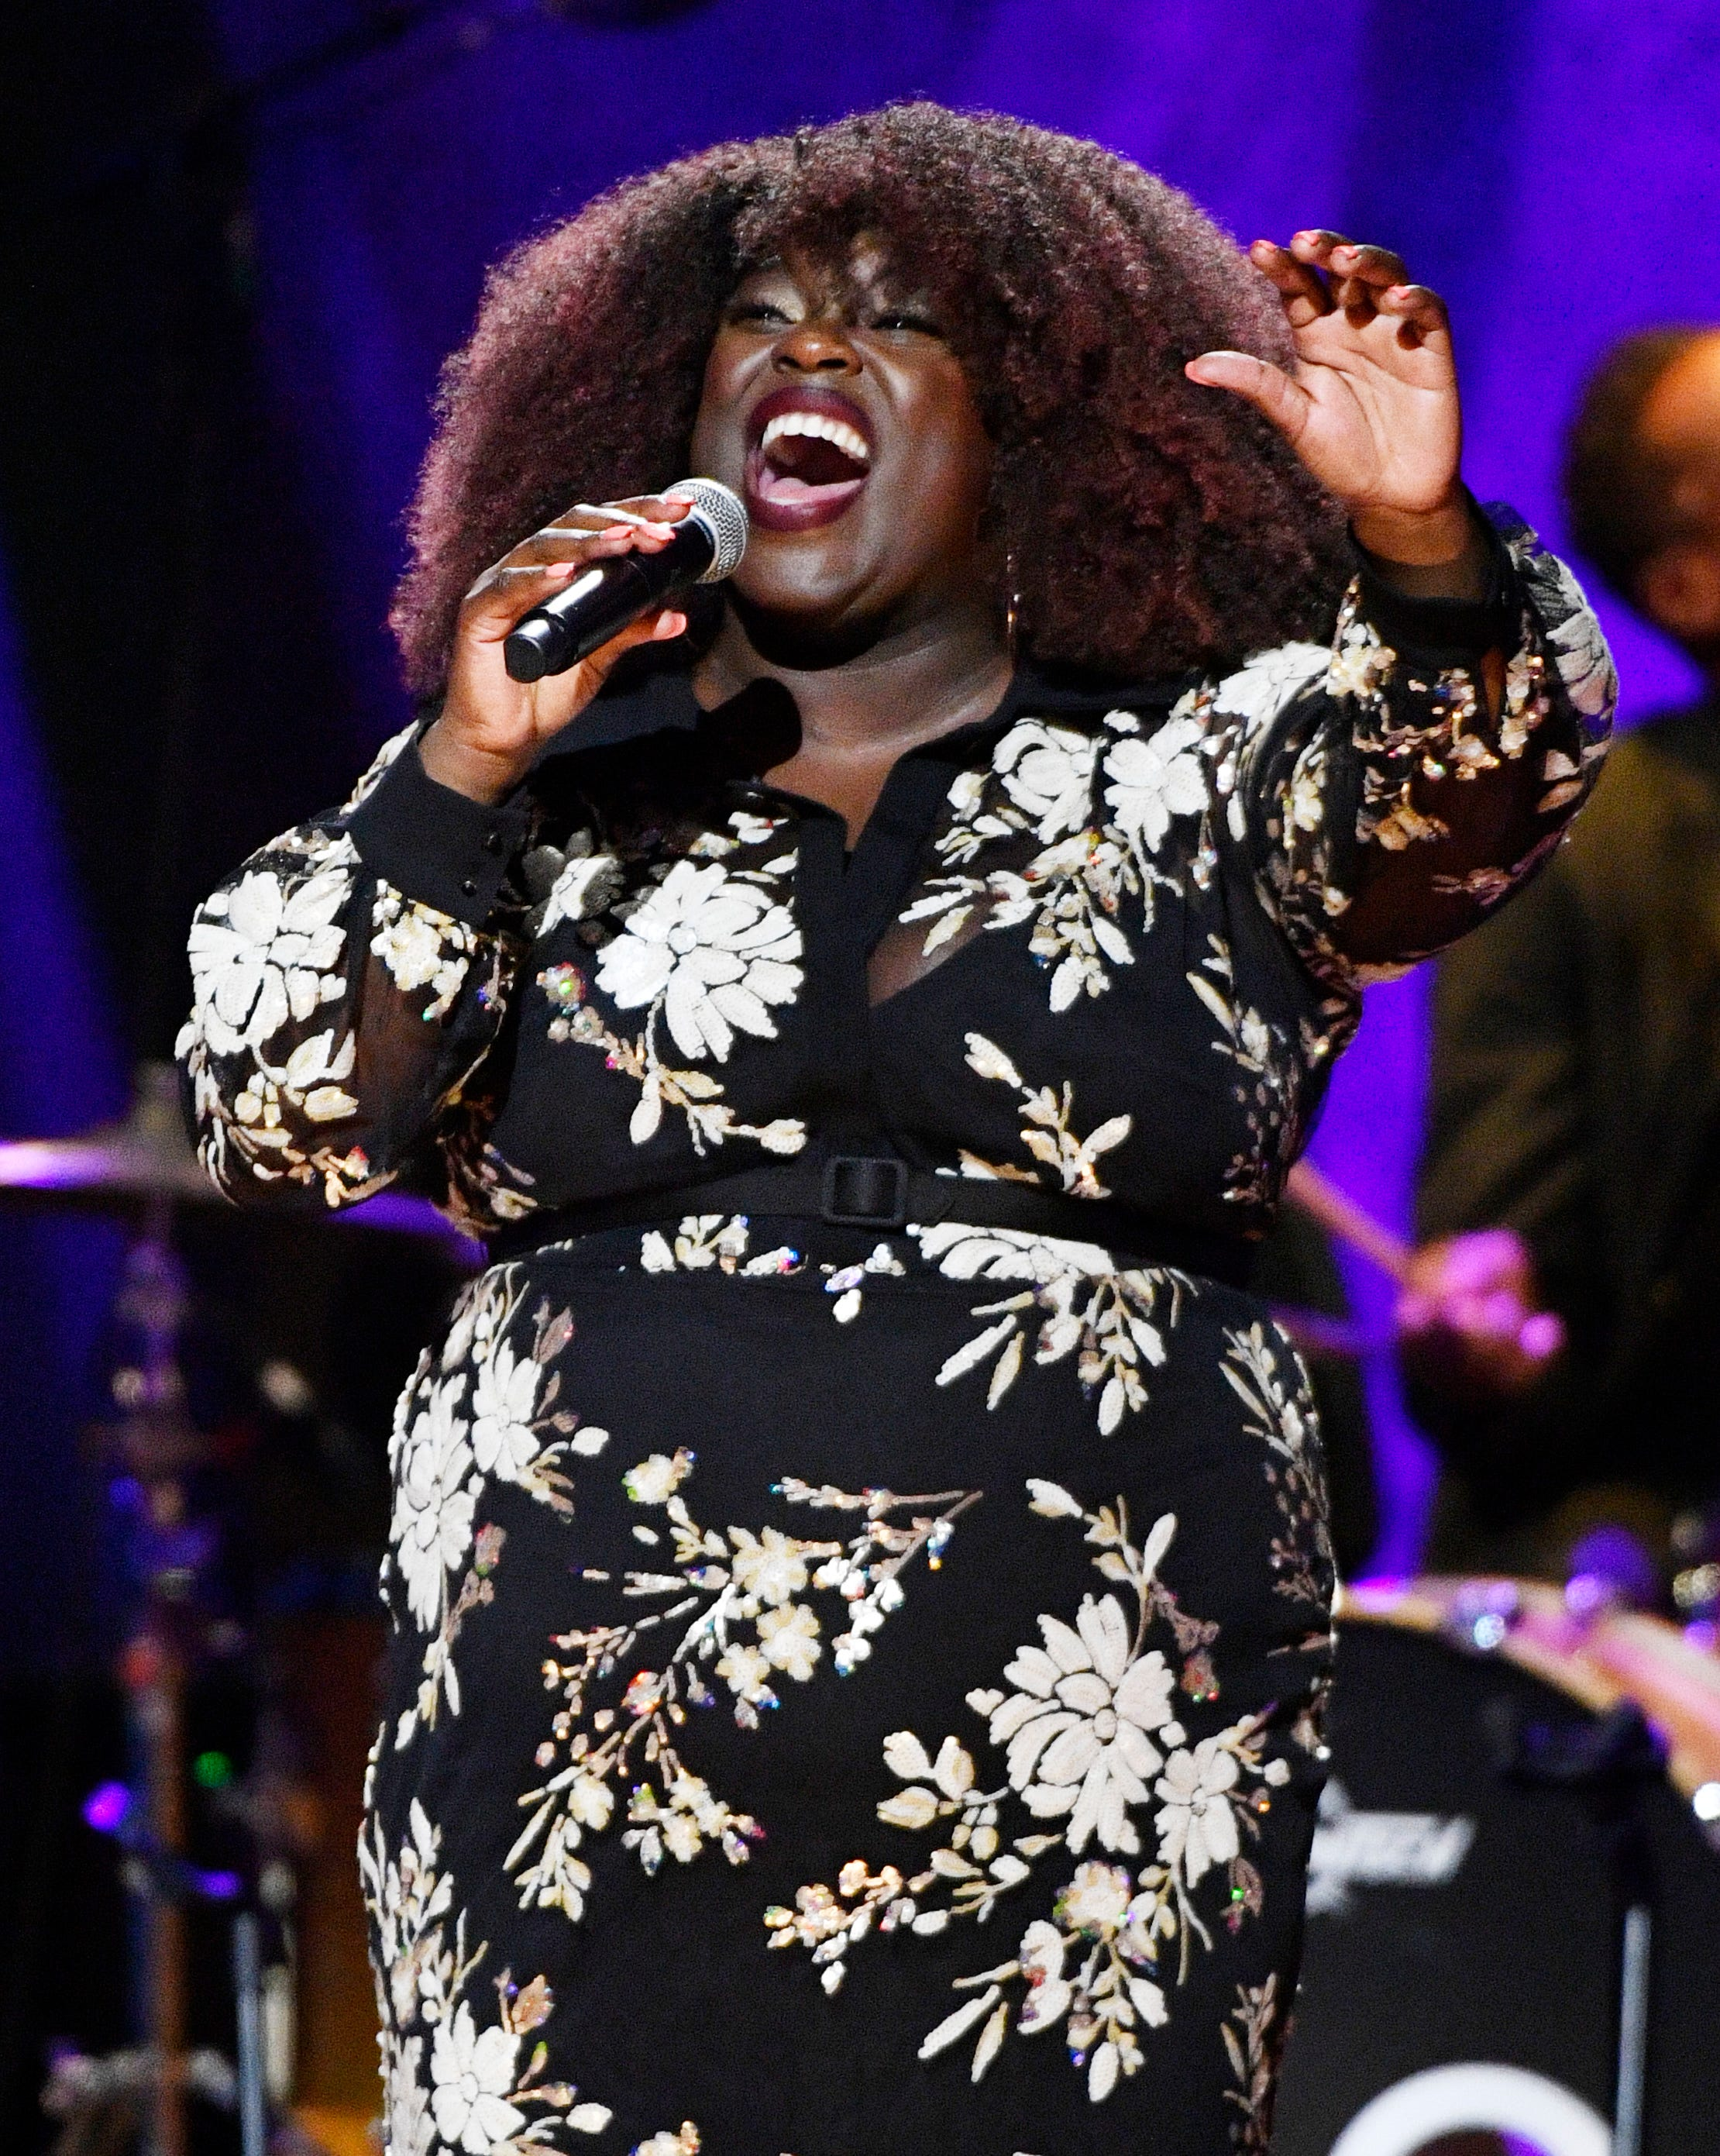 Yola to headline Ryman next May; performs  To Be Young, Gifted and Black  on late night TV